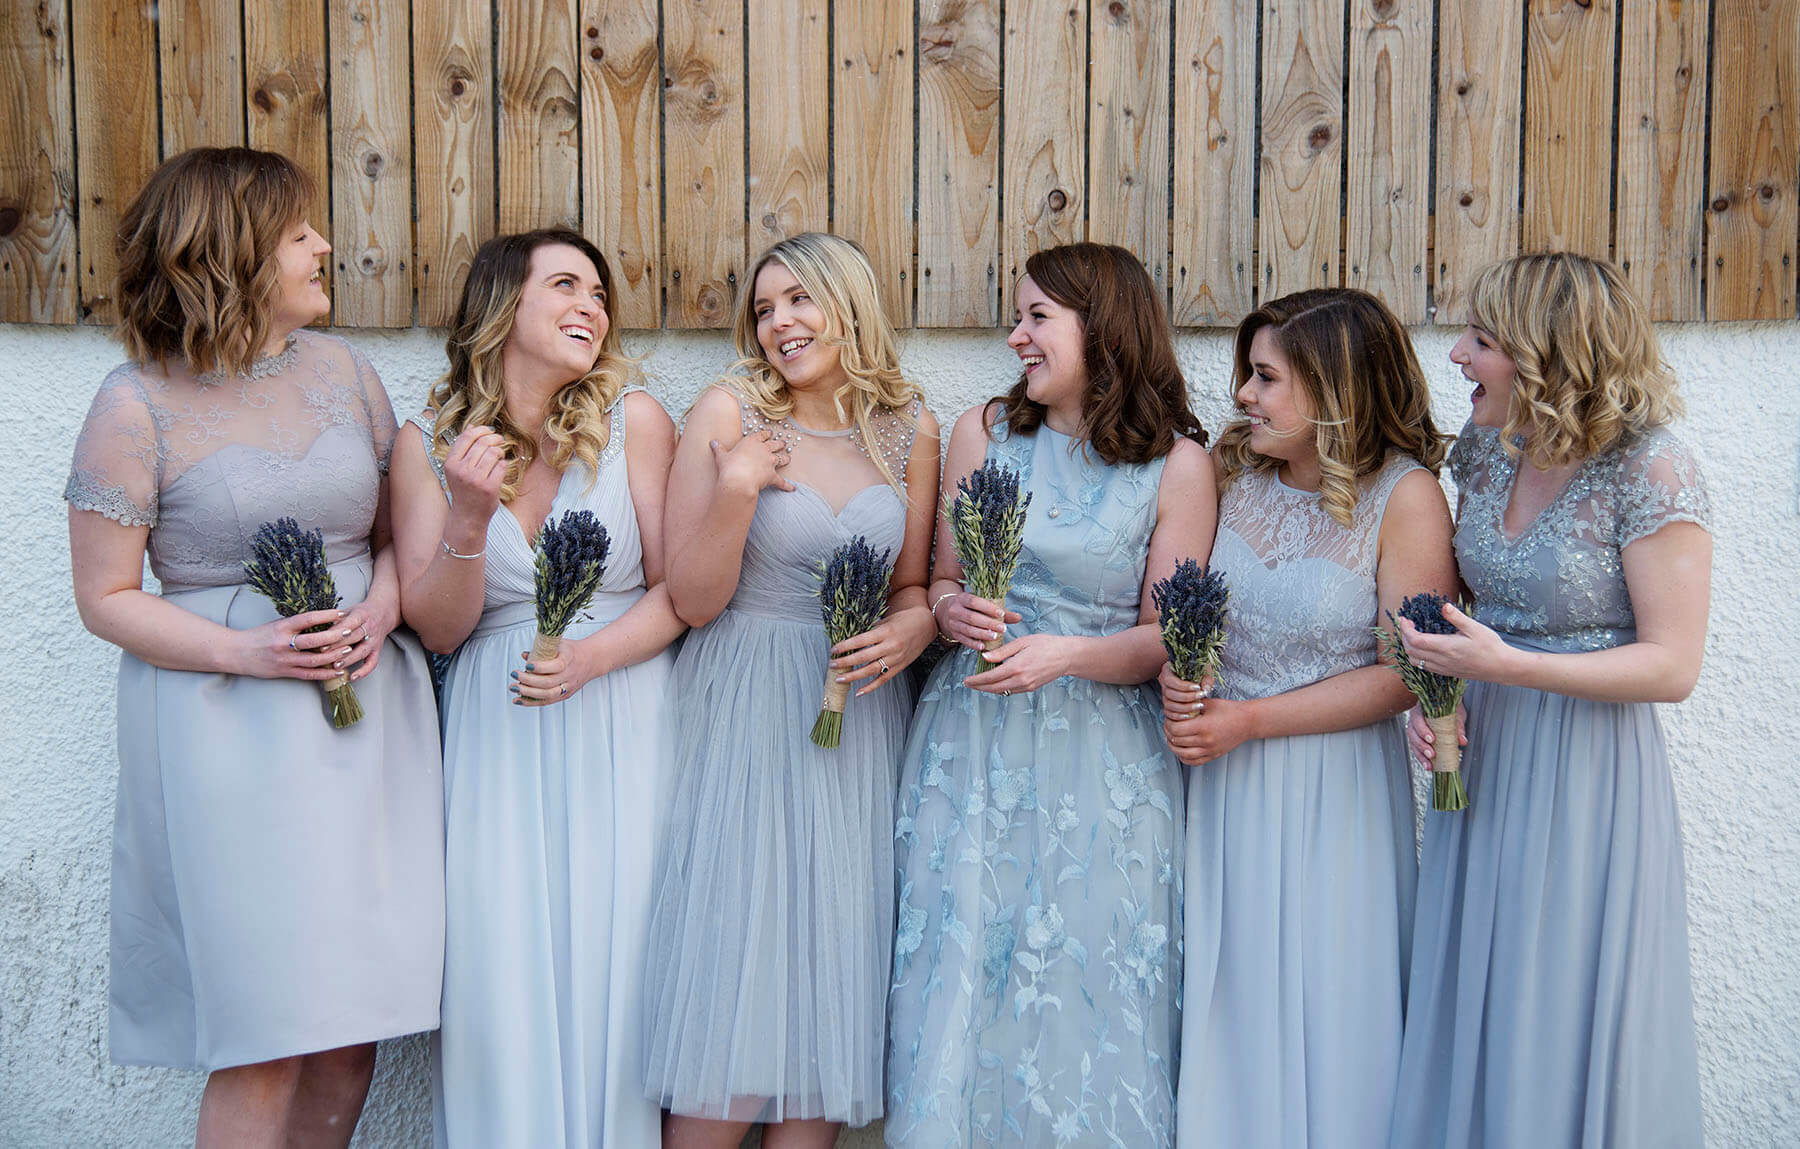 Bridesmaids stood in front of a wall holding bouquets and laughing